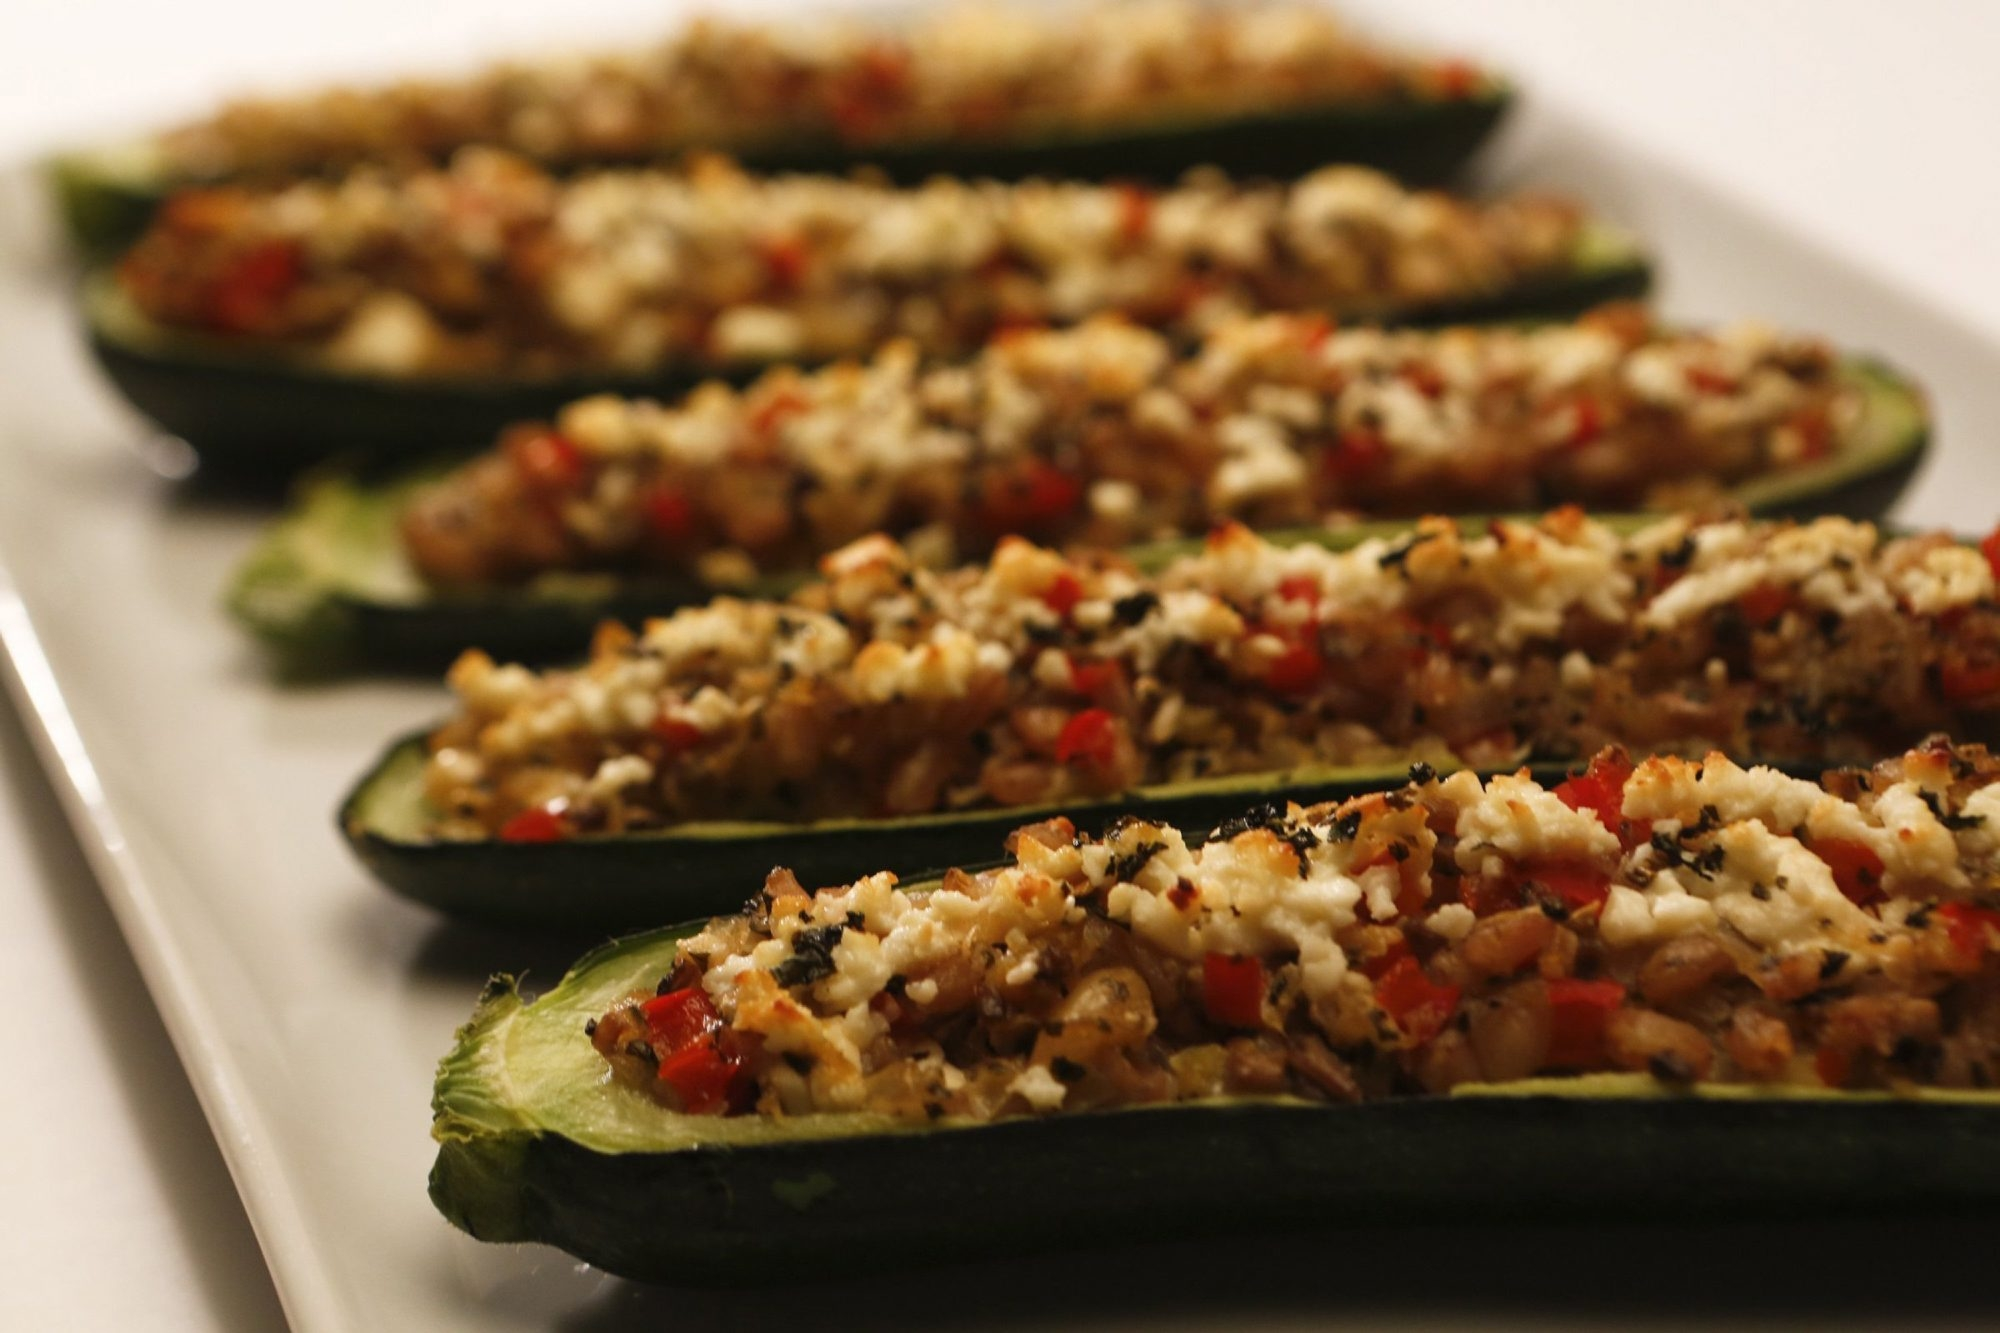 When your garden gives you an abundance of zucchini, scoop them out and stuff with farro, red pepper and feta.